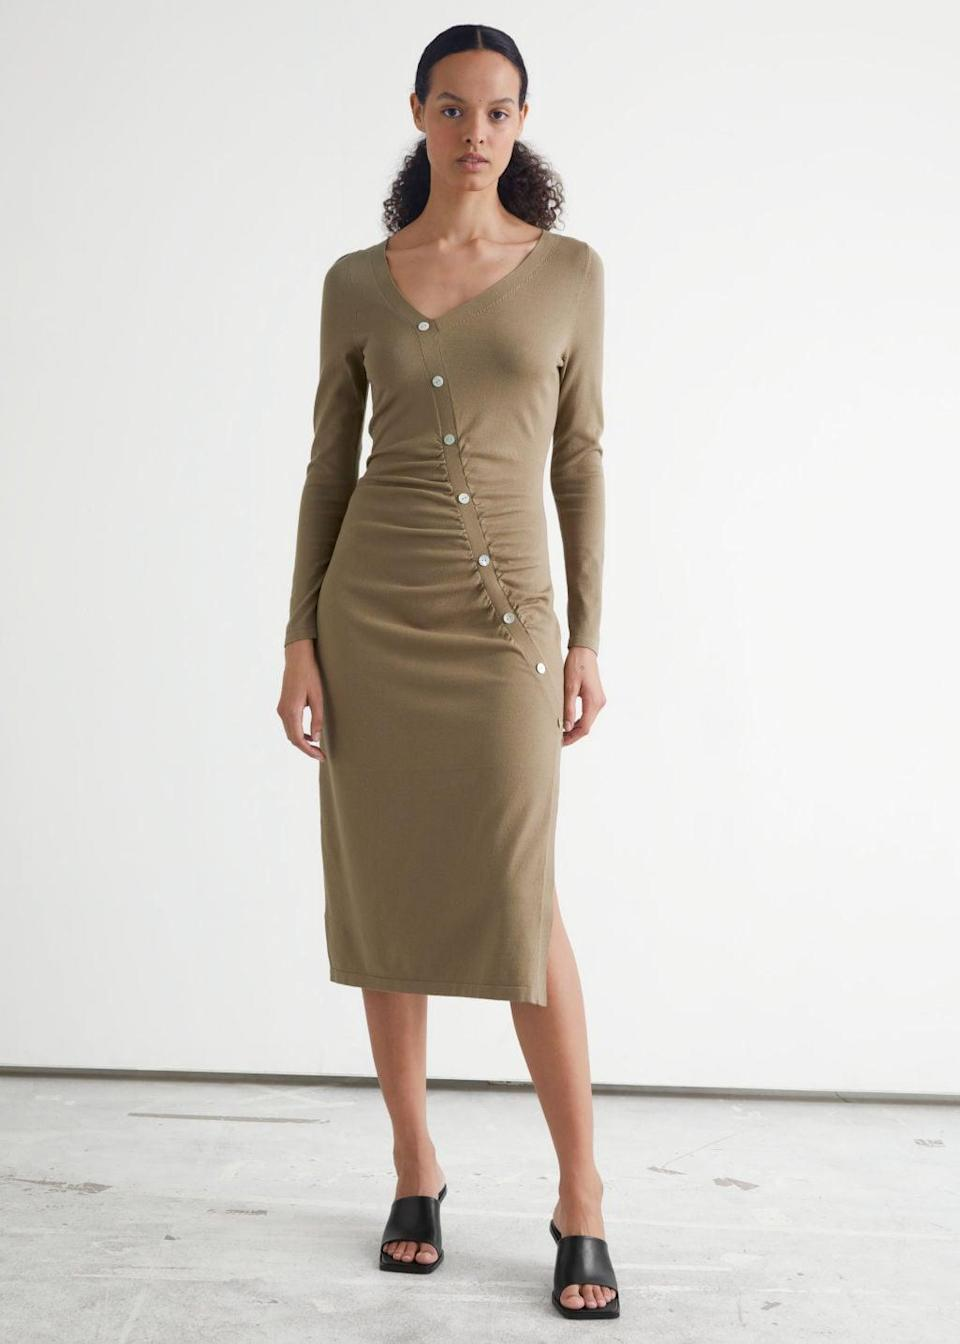 <p>From the office to a spontaneous afterwork dinner, this <span>&amp; Other Stories Buttoned Asymmetric Midi Dress</span> ($60, originally $119) will stylishly transition into the night. From the silhouette to the side slit, everything about it is flattering.</p>